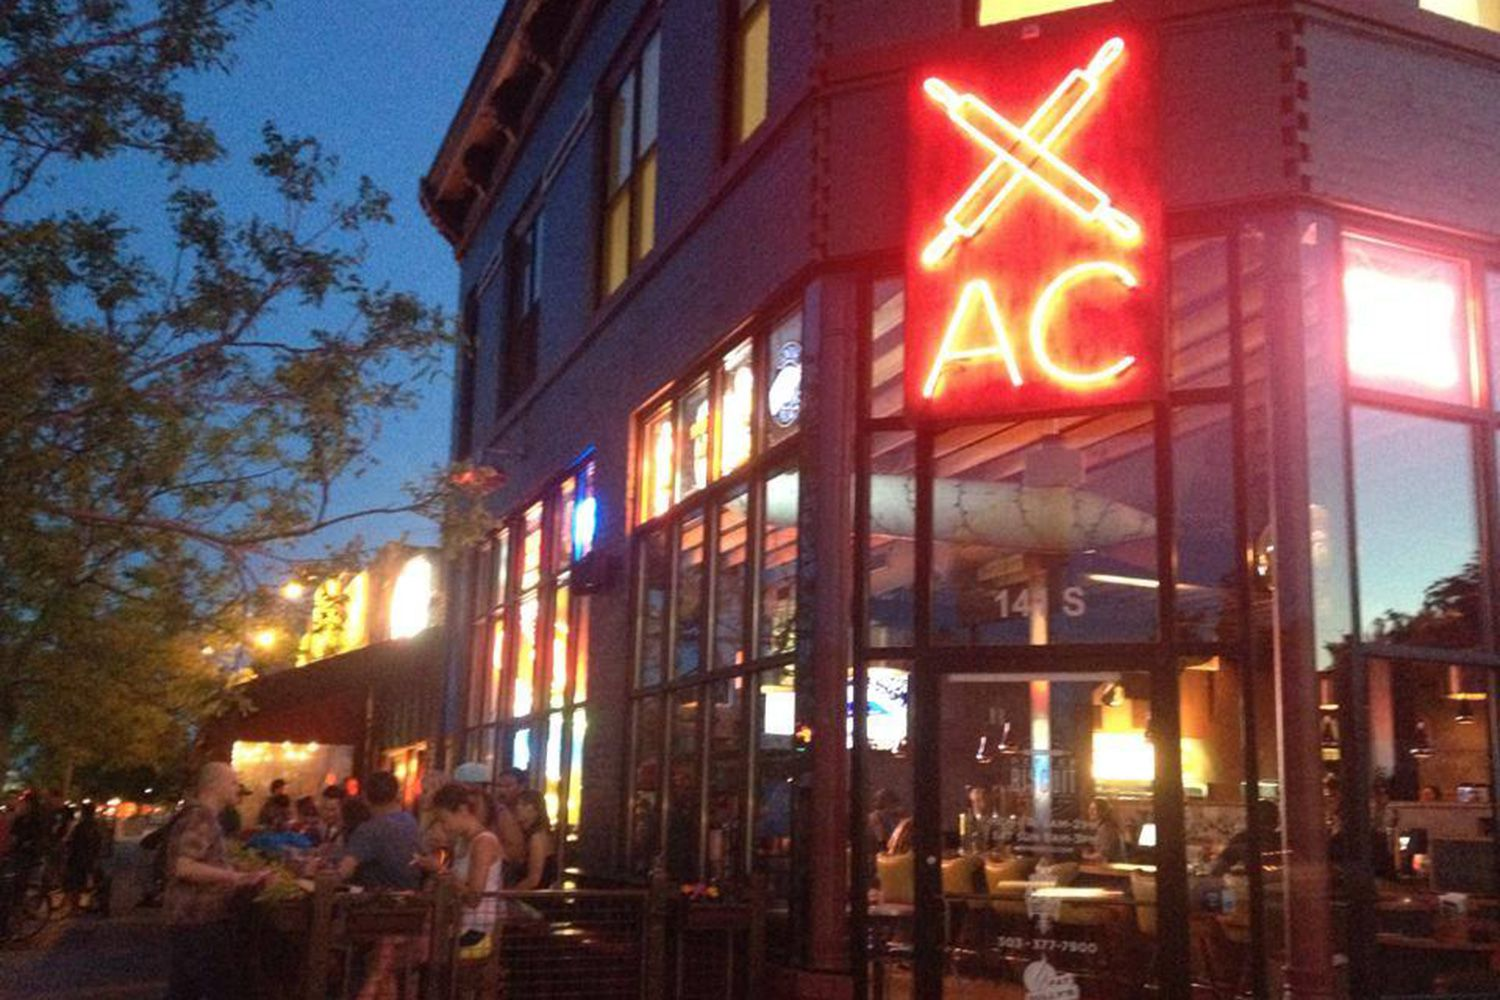 Denver Eateries On Diners Drive Ins And Dives